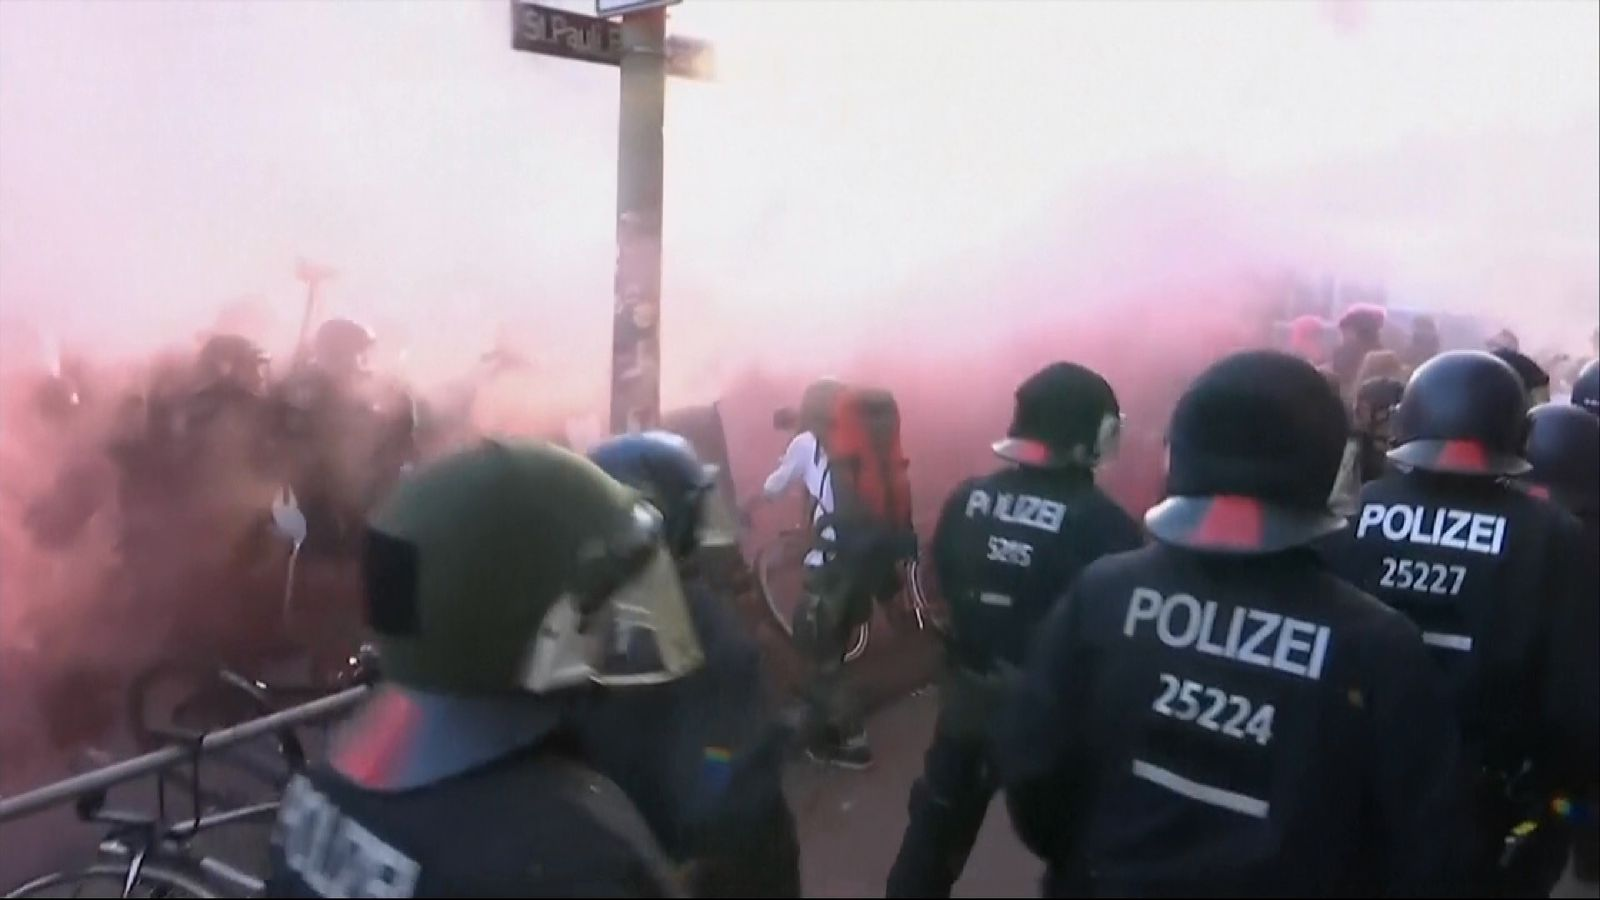 Police move to exert control as protests mount in Hamburg ahead of G20 talks